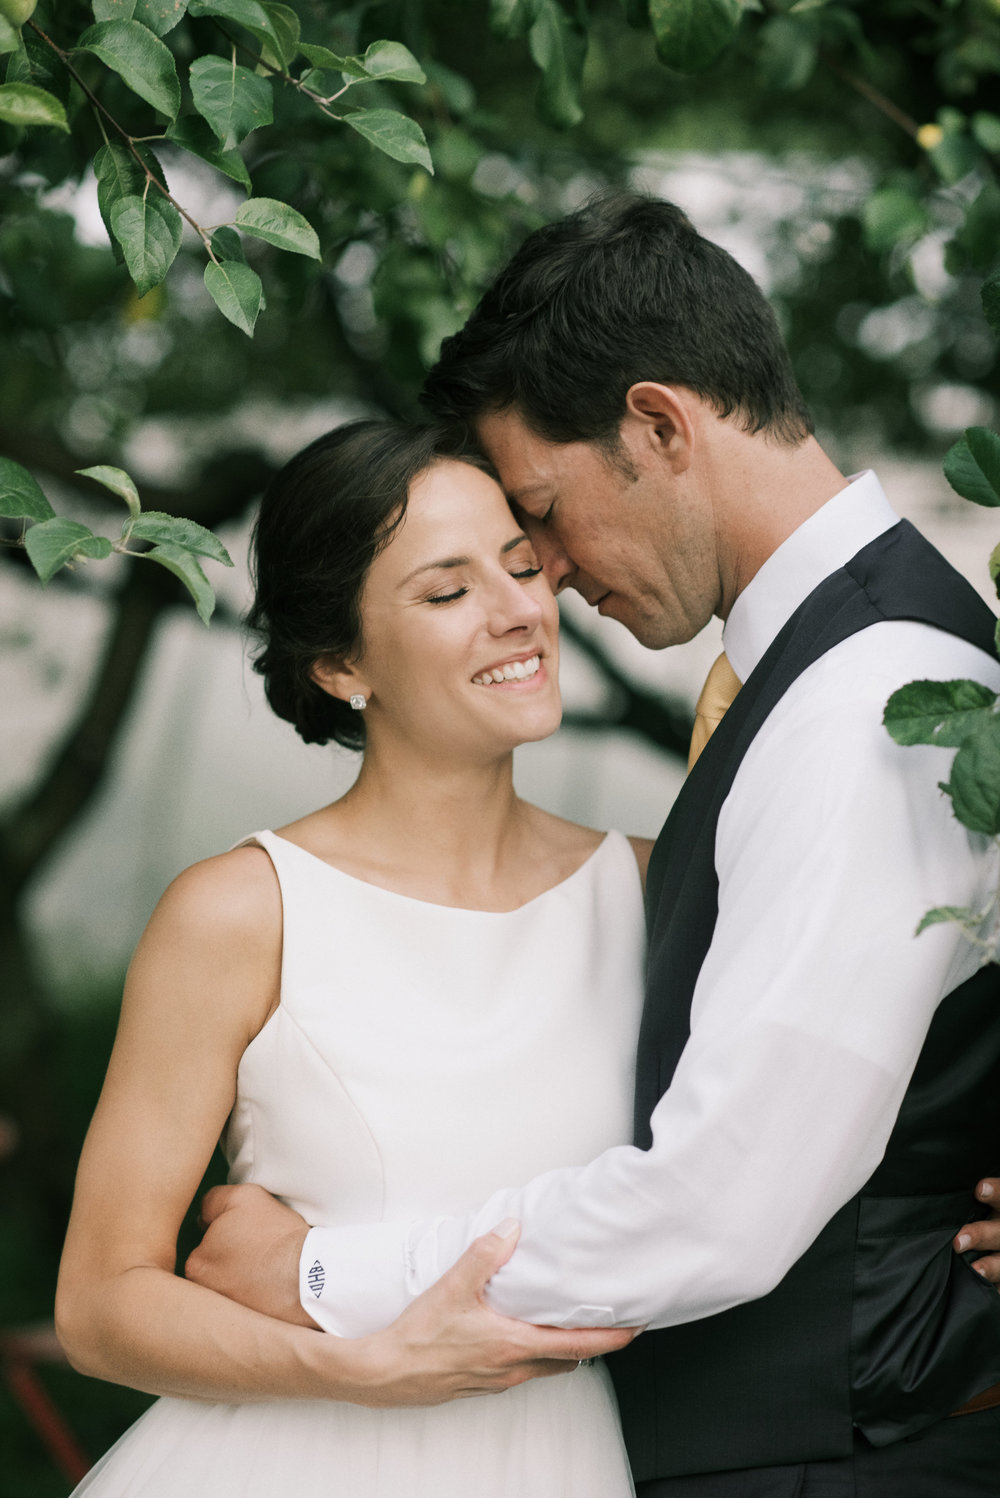 Christine & Brian - Blooming Hill Farm | Hudson Valley, NYPhotos by Basia Ambroziak